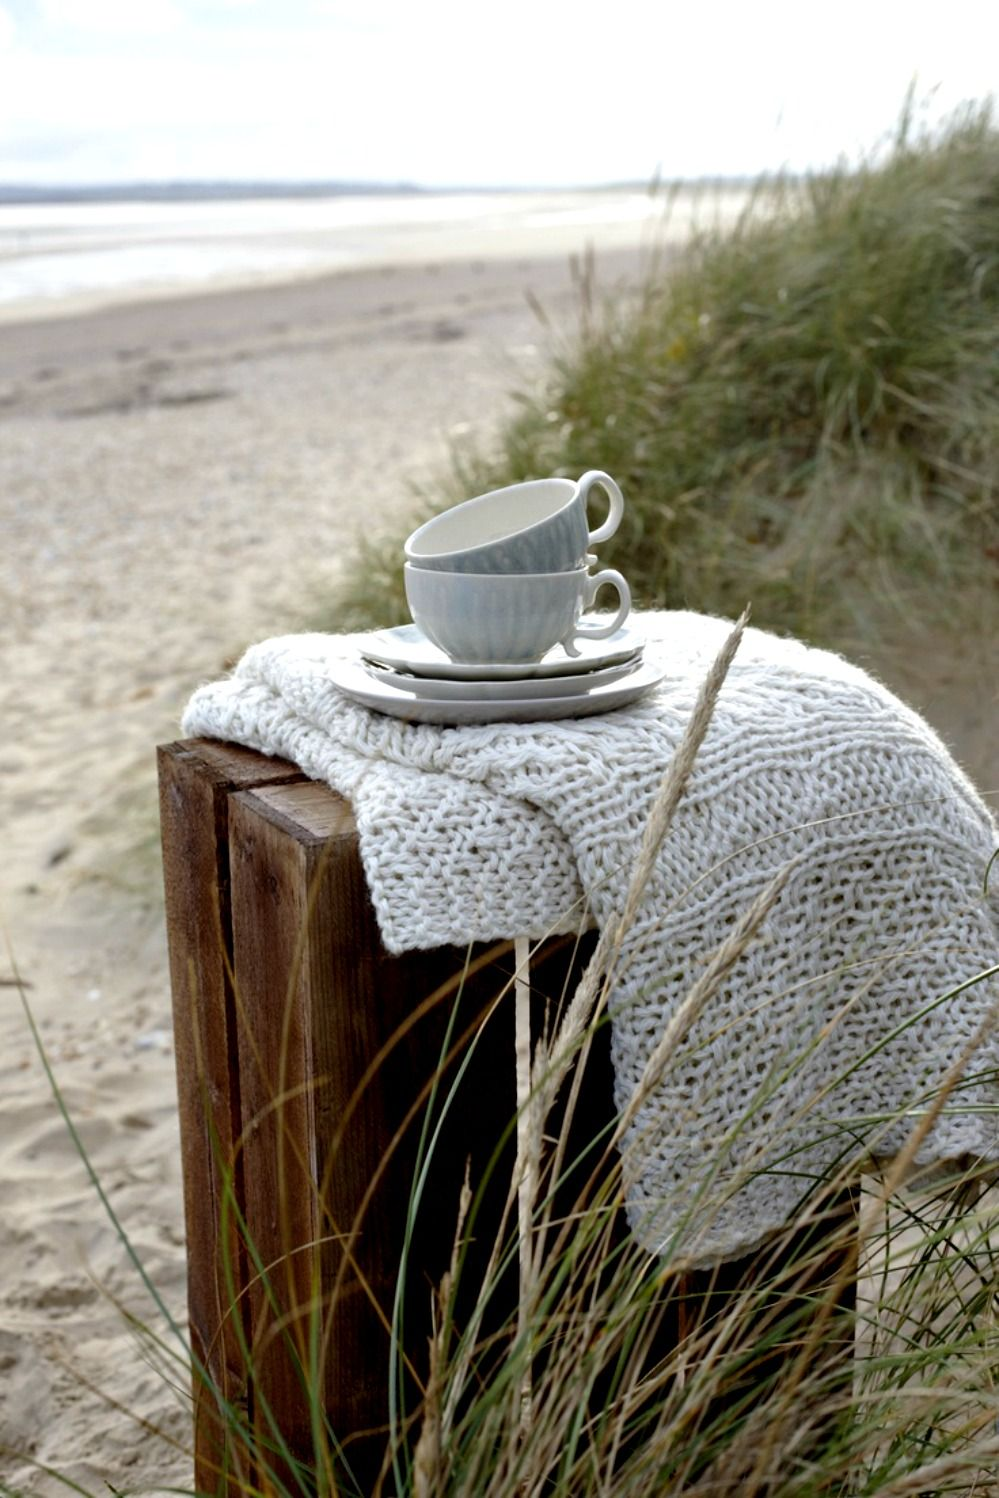 Take time to sit on the beach, wrapped in a warm blanket, with a hot cup of tea (or coffee) in a thermos, and just be.